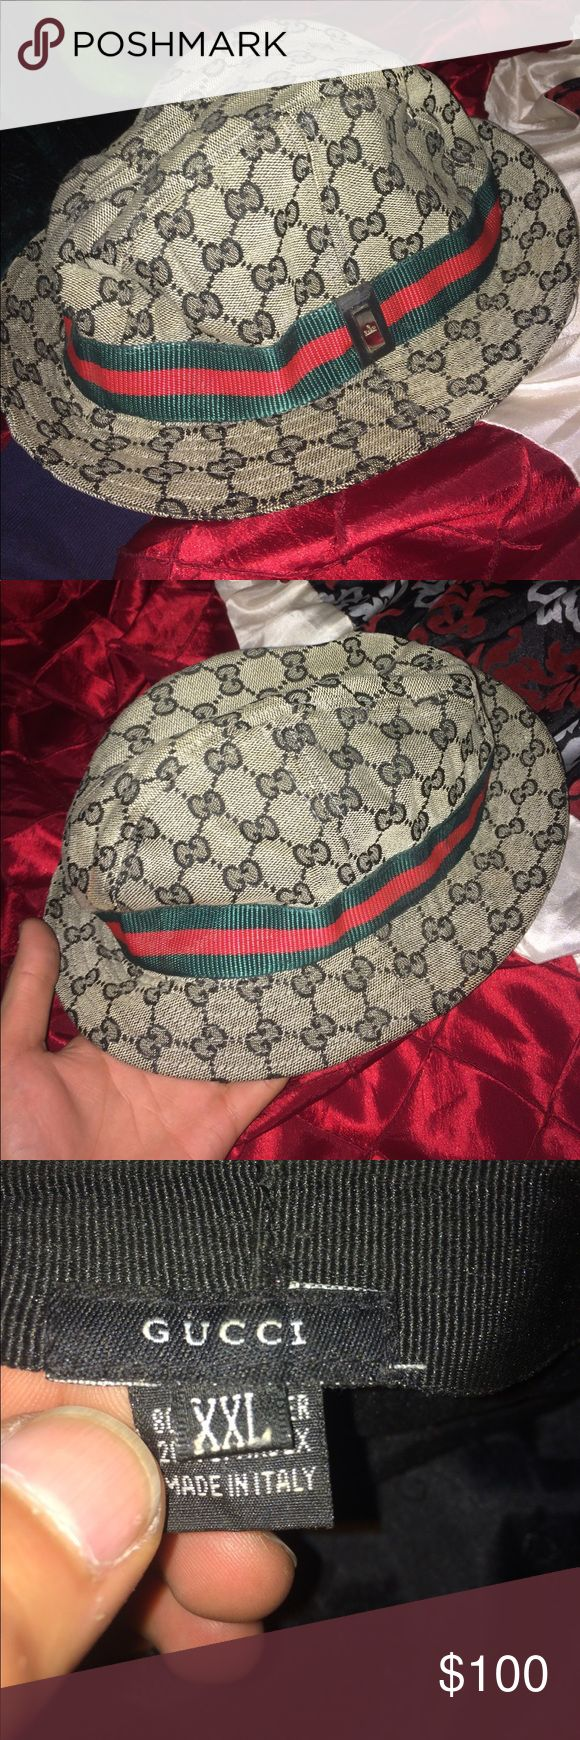 Gucci bucket hat Men's/ women's Gucci bucket hat. In great condition and very stylish says XXL but fits regular OBO Gucci Accessories Hats